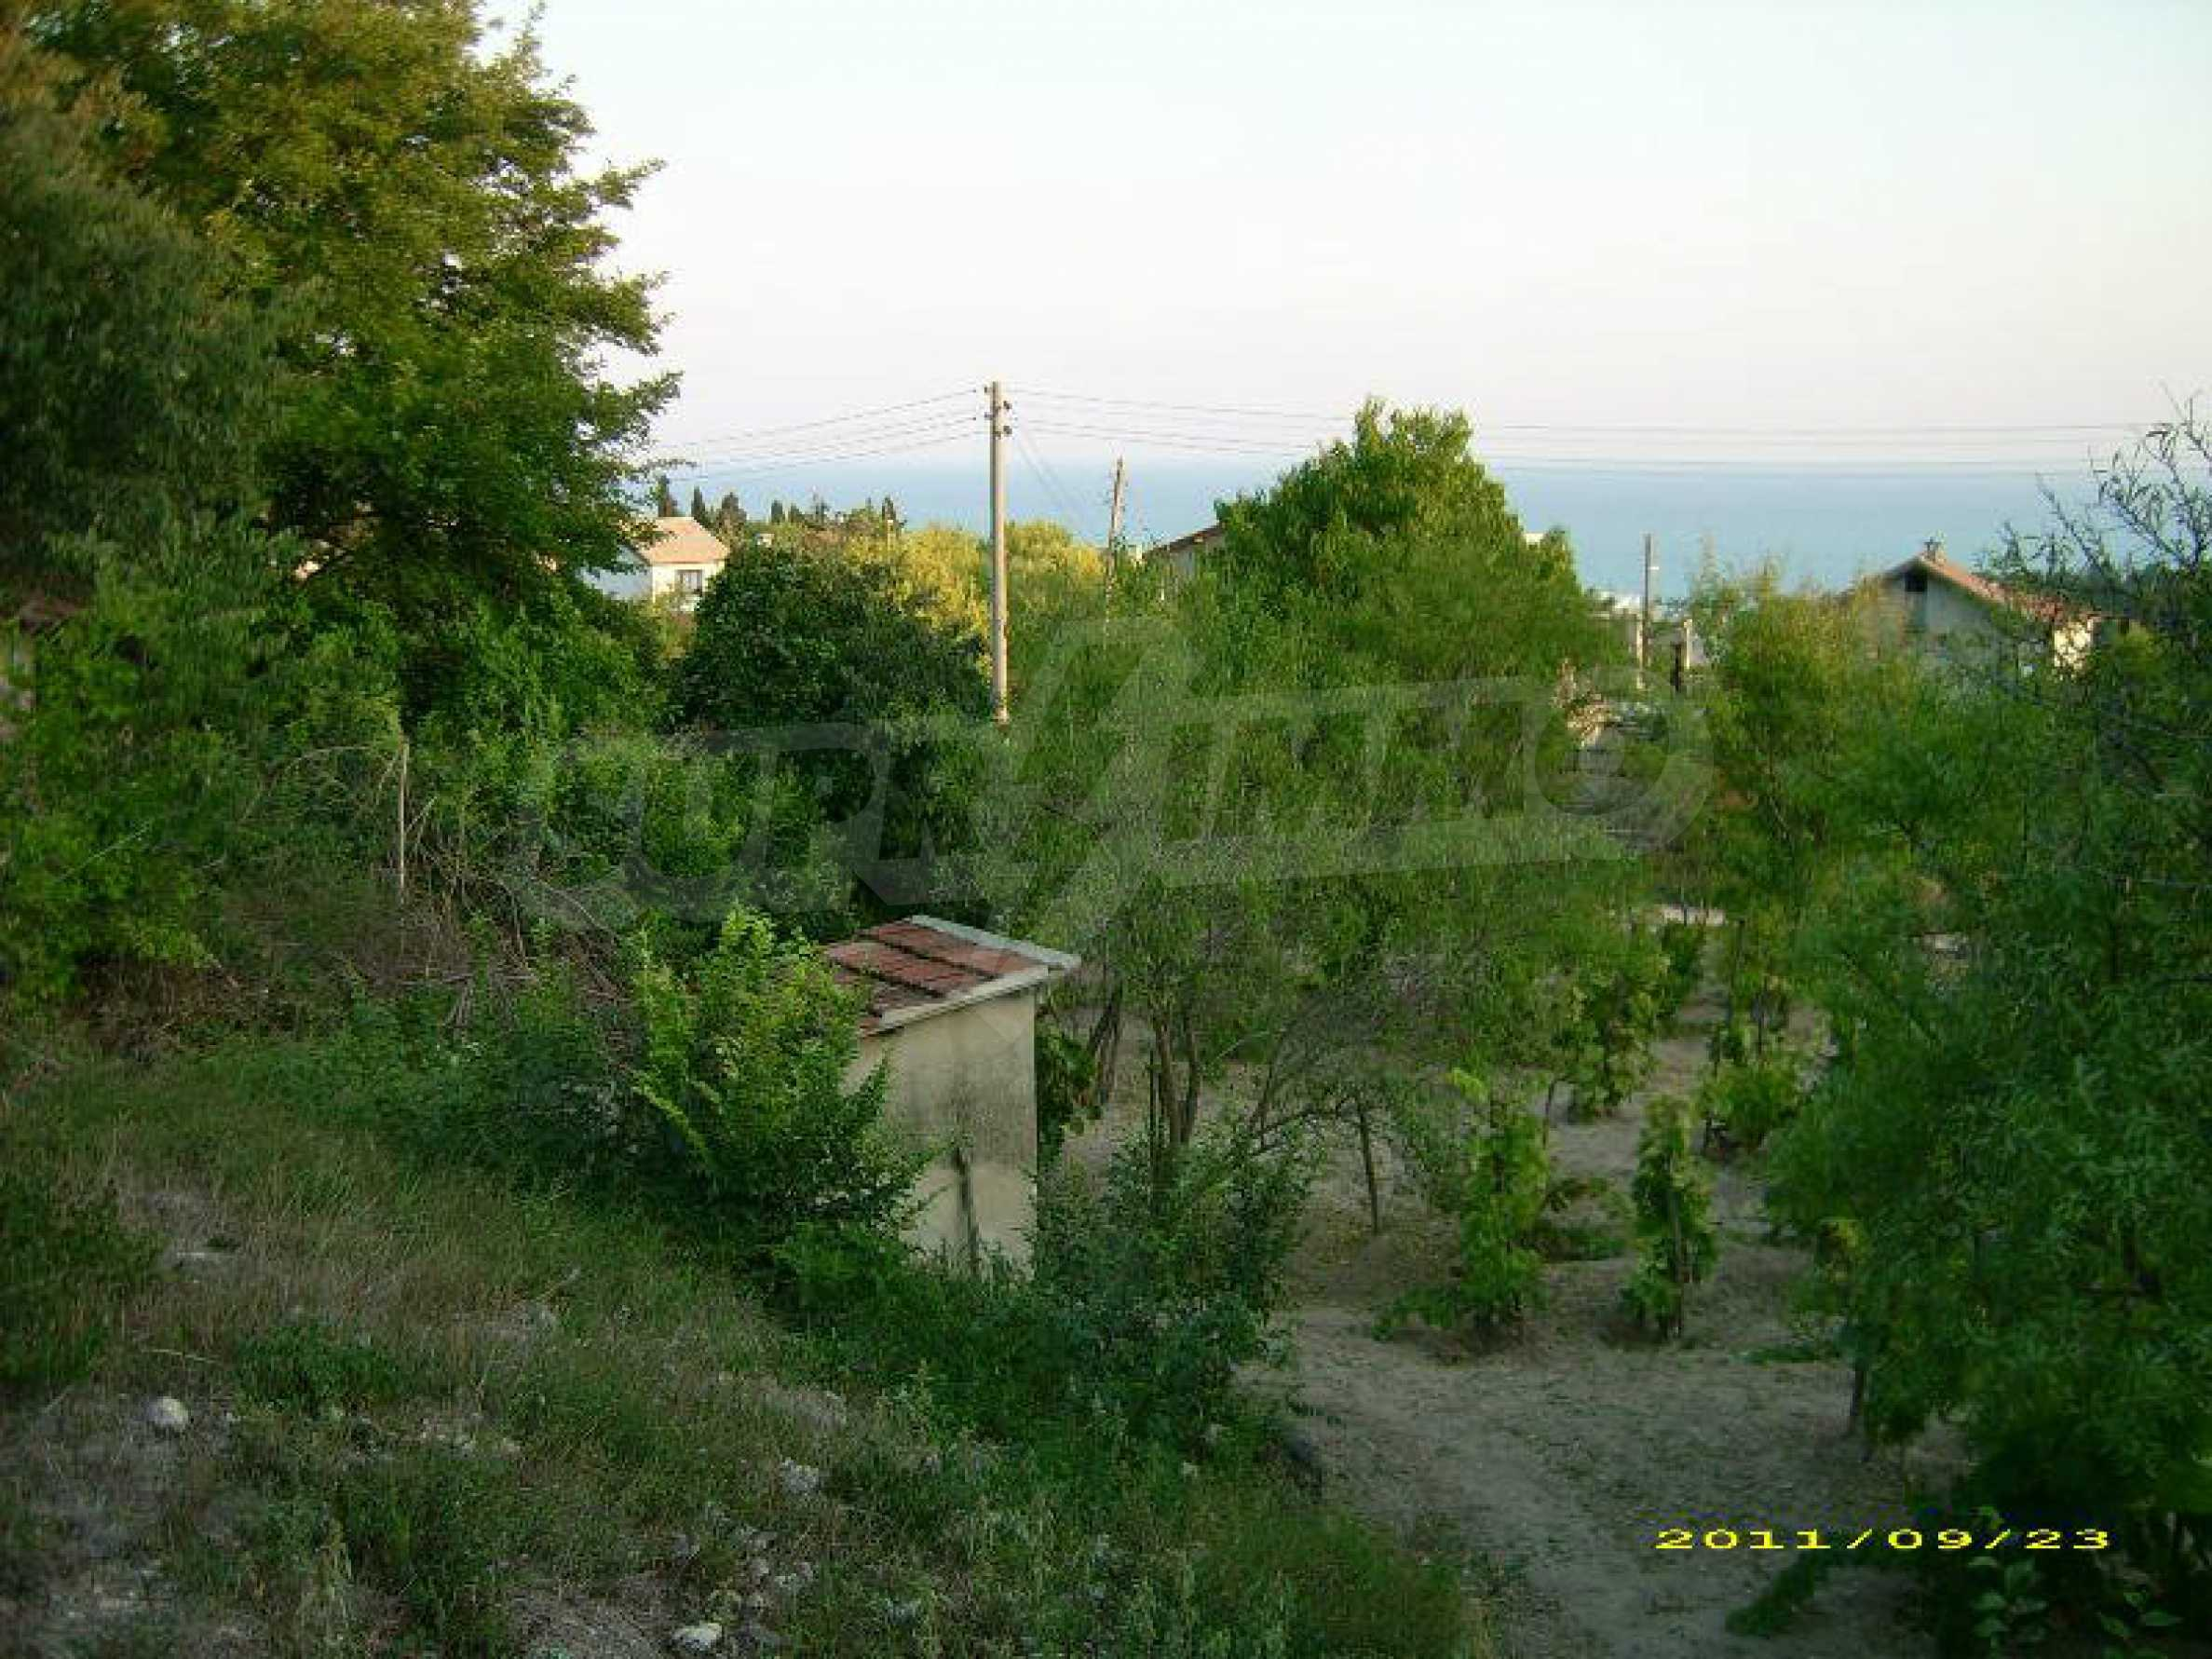 Regulated land near Balchik 2